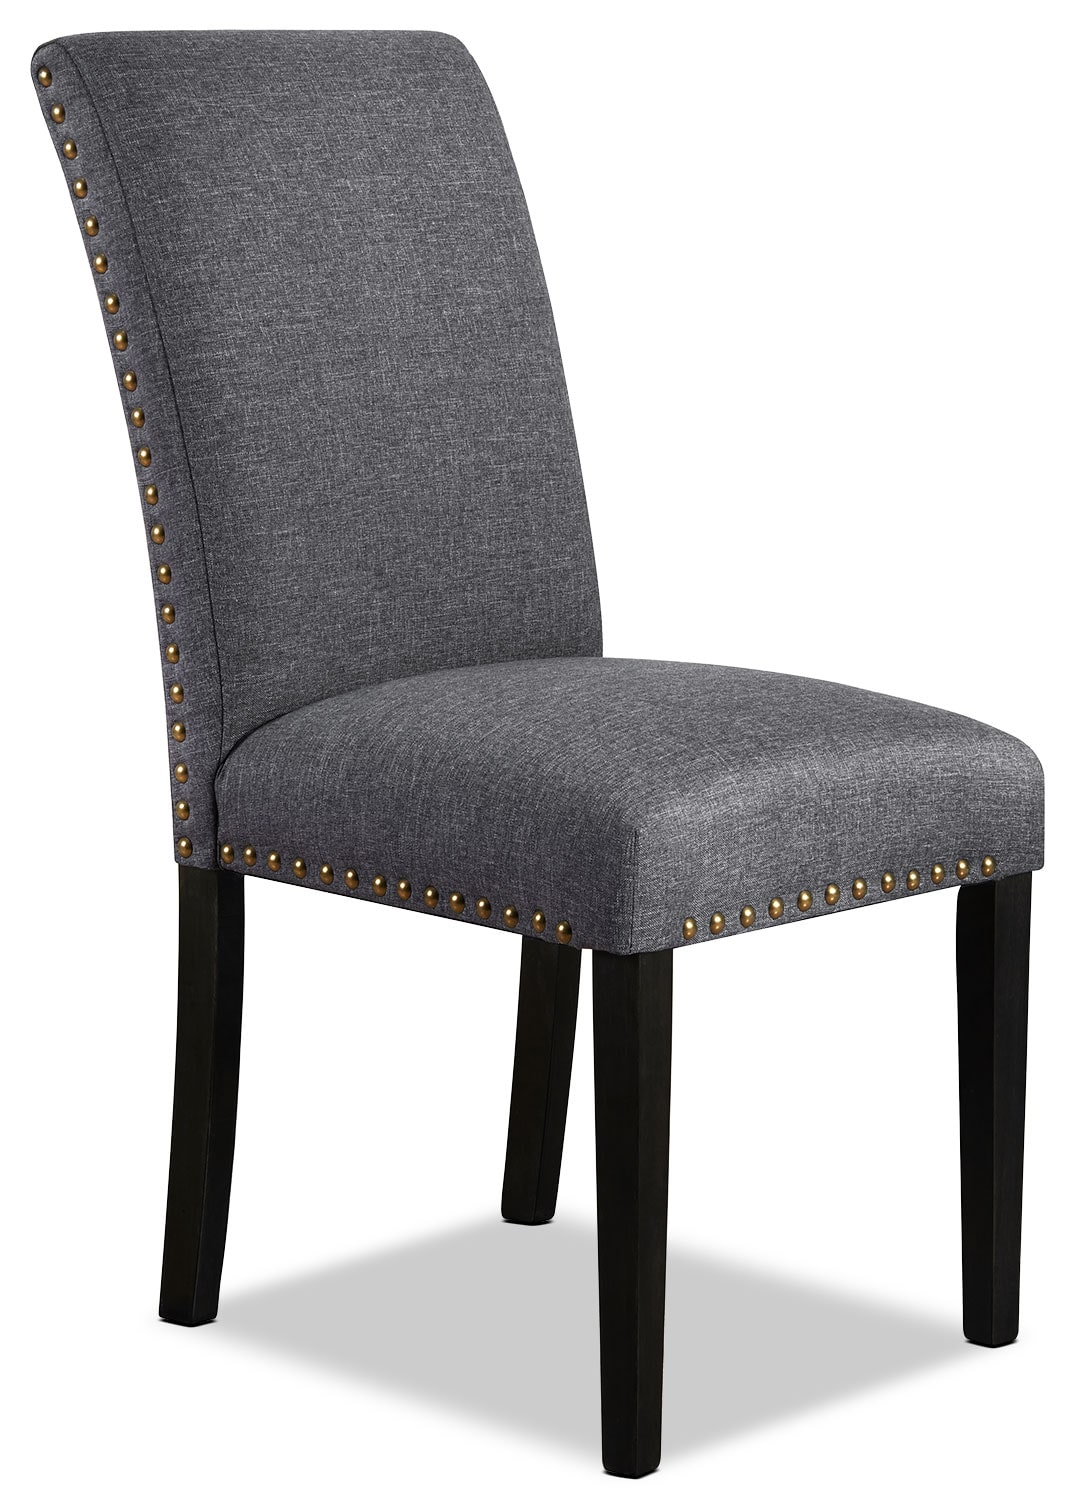 York studded dining chair grey the brick for Studded dining room chairs